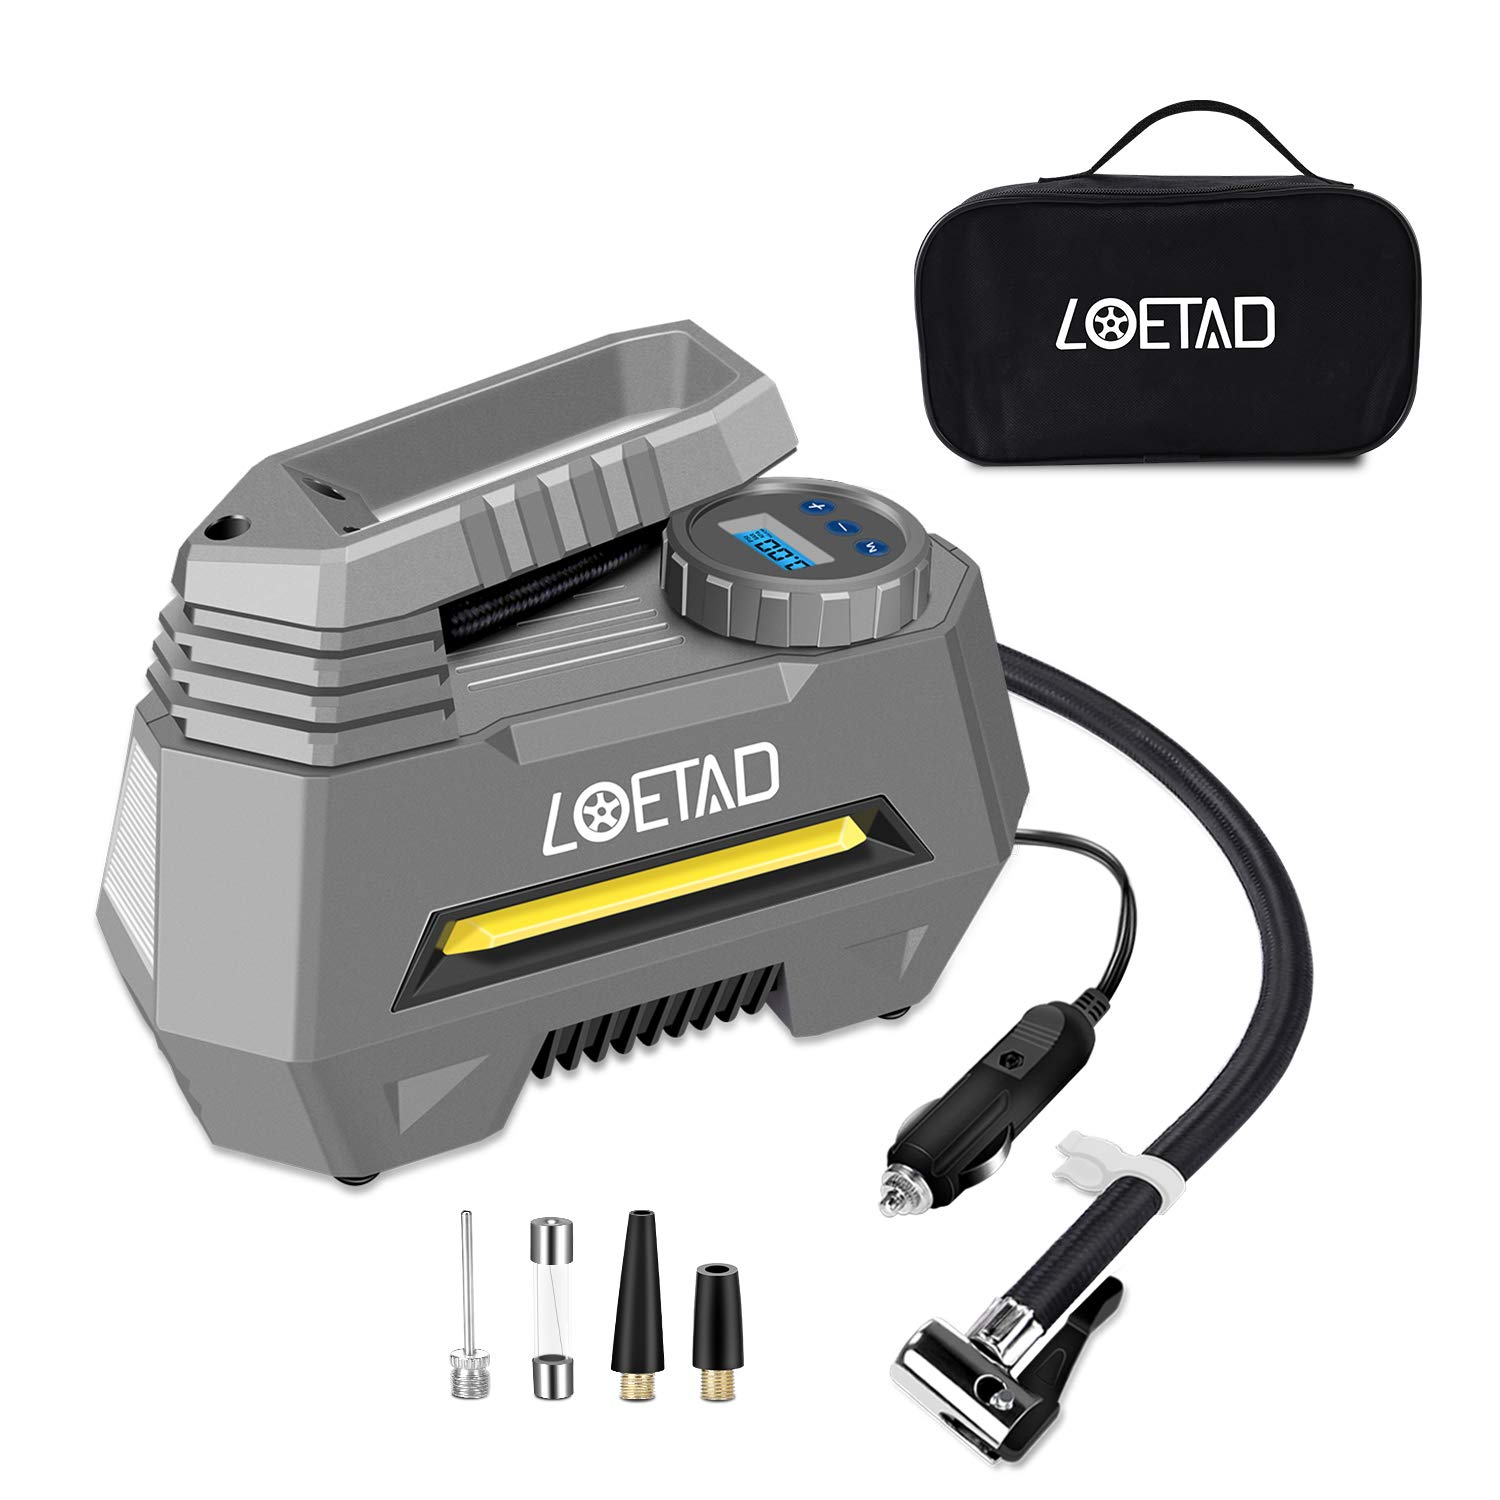 LOETAD Portable Air Compressor Pump Digital Car Tire Inflator 12V DC Tire Pump for Car Bicycle and Other Inflatables